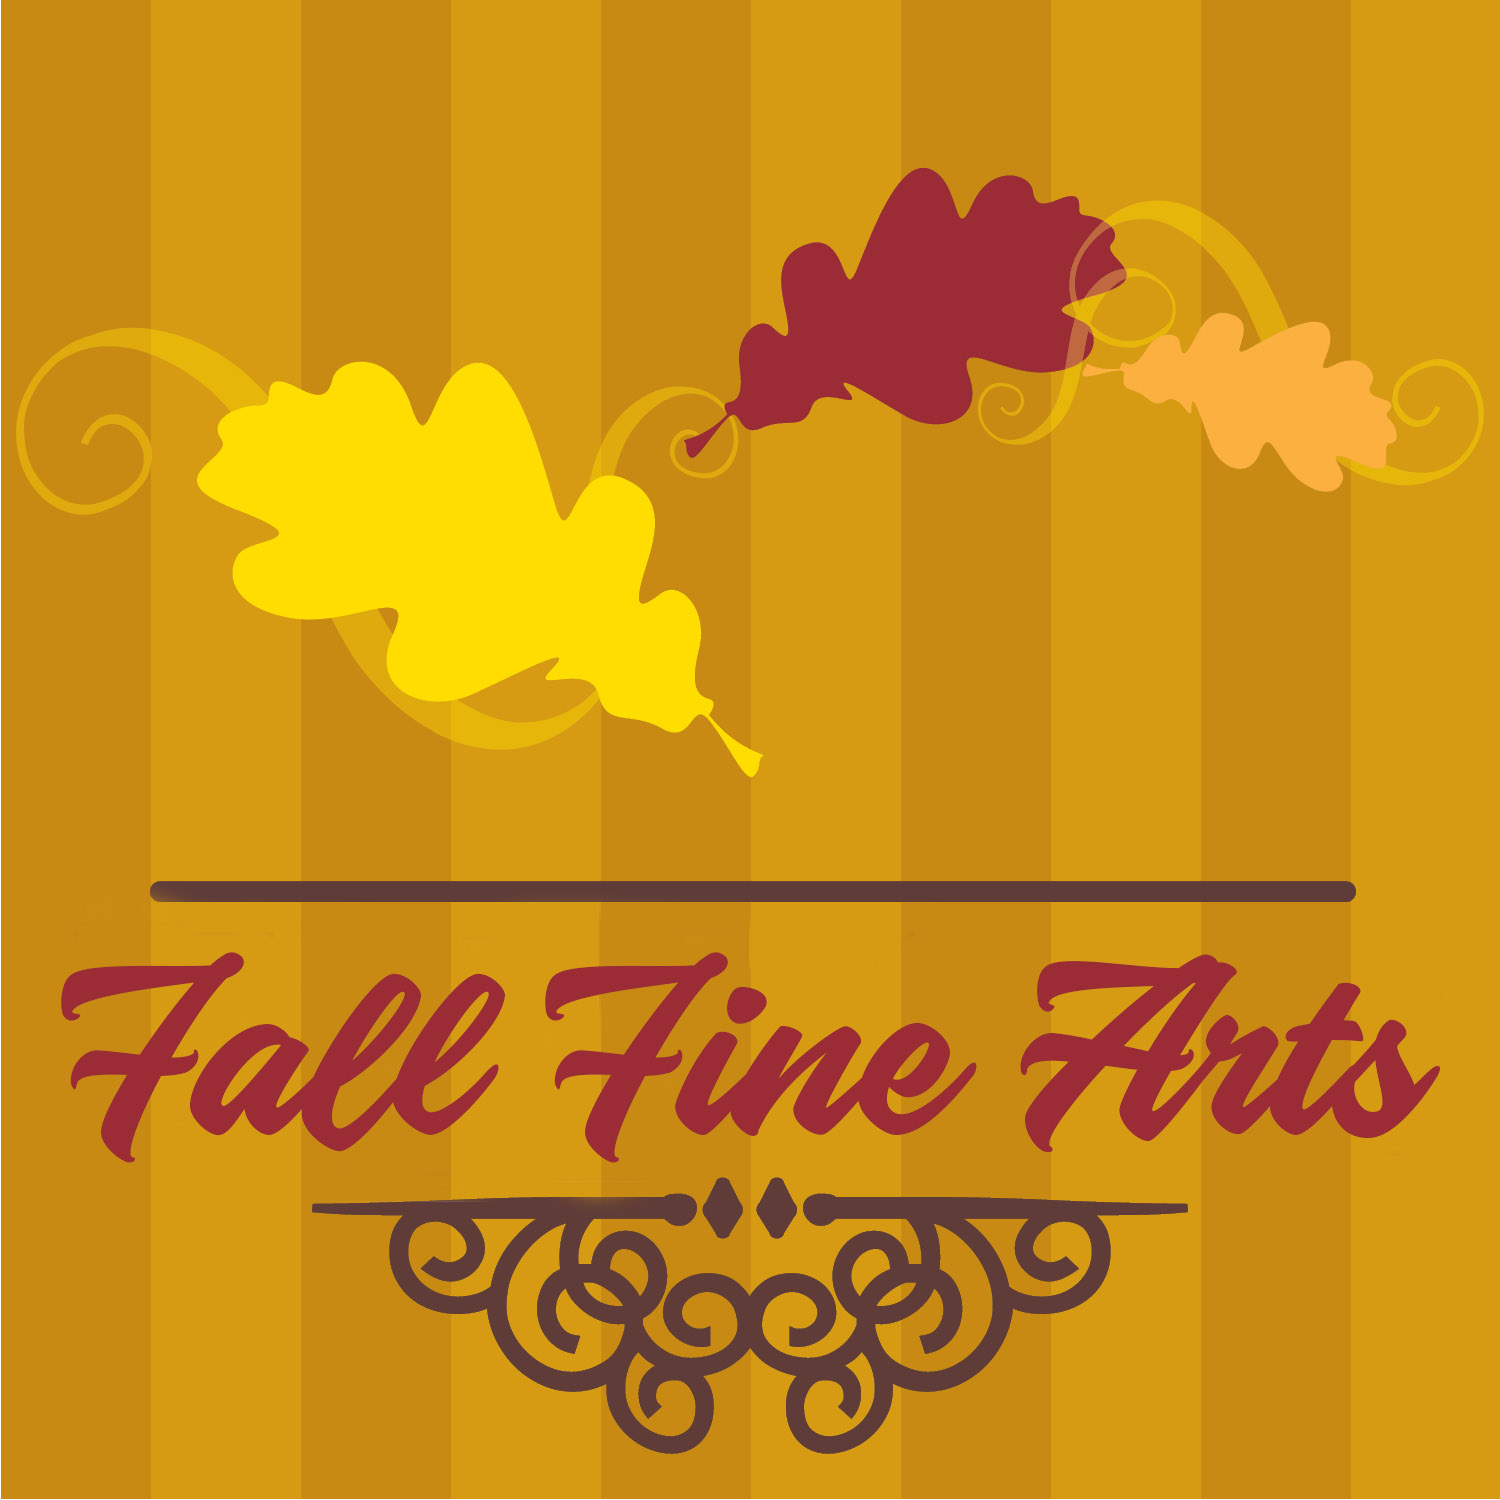 Check out the fall fine arts events at M State